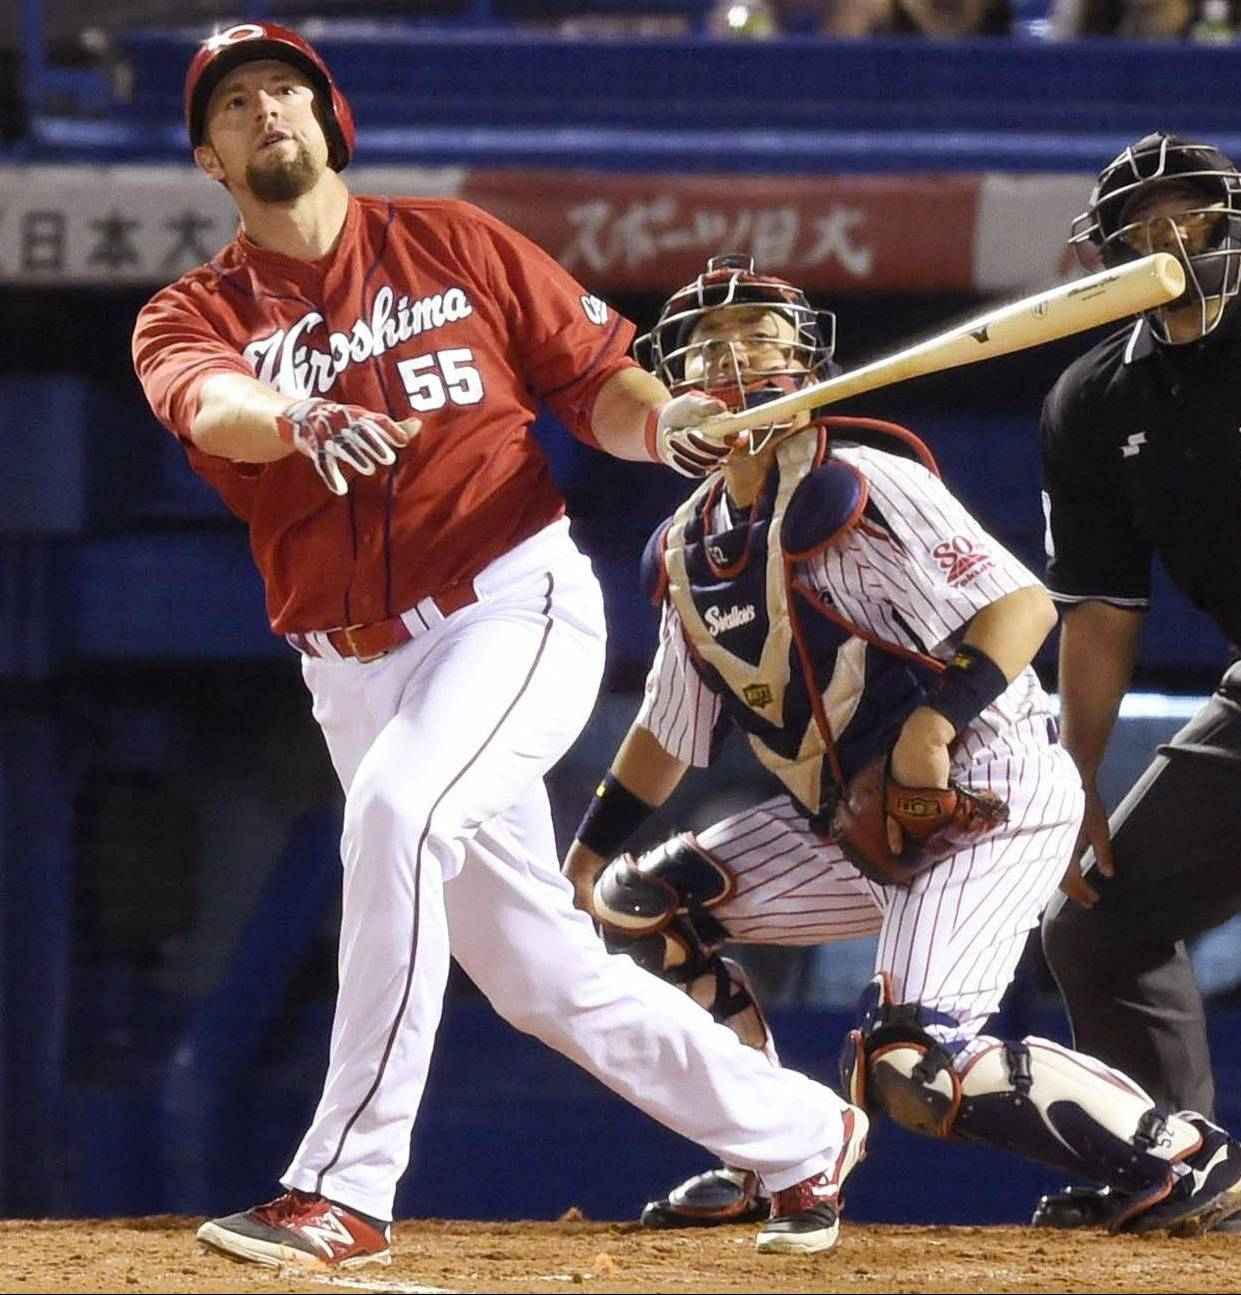 Carp slugger Brad Eldred hits a tiebreaking home run in the fifth inning against the Swallows on Tuesday at Jingu Stadium. Hiroshima defeated Tokyo Yakult 4-2. | KYODO